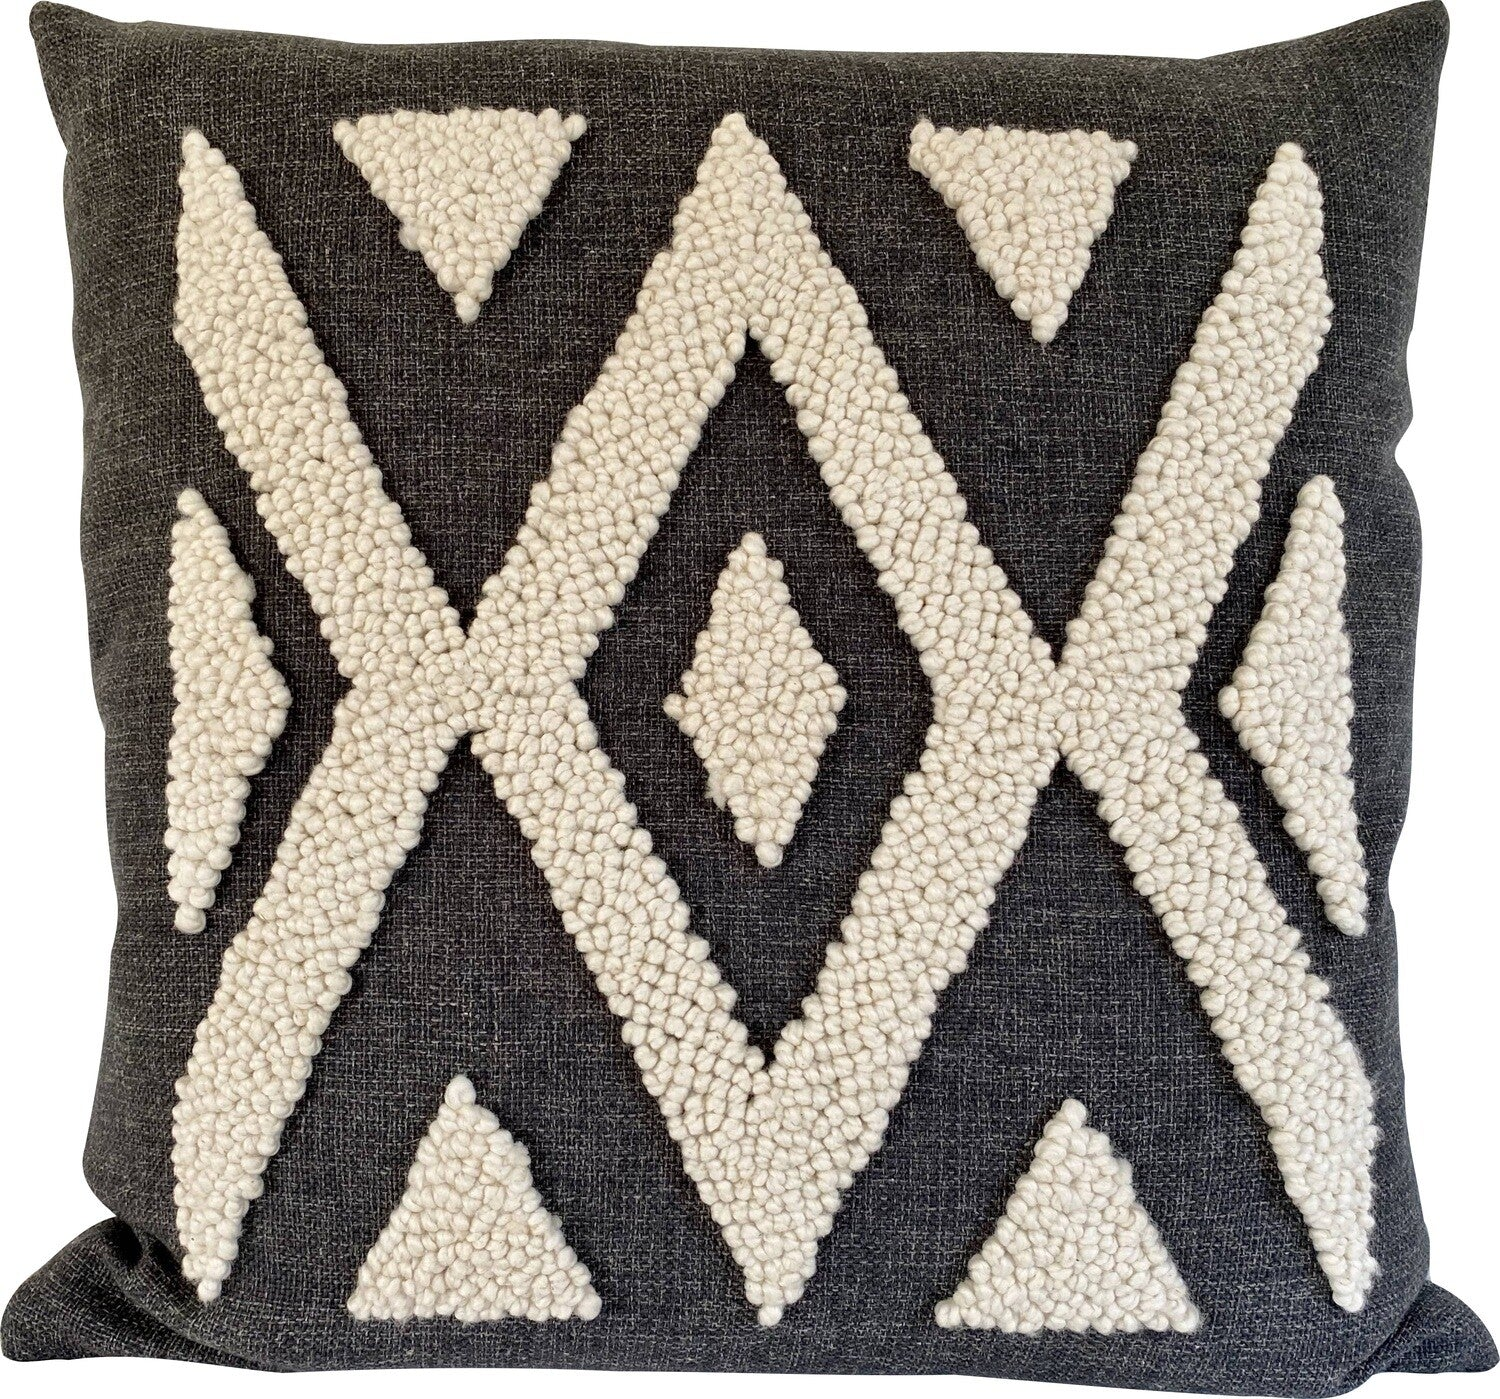 Punch Needle Cushion - Ndebele Pattern 2